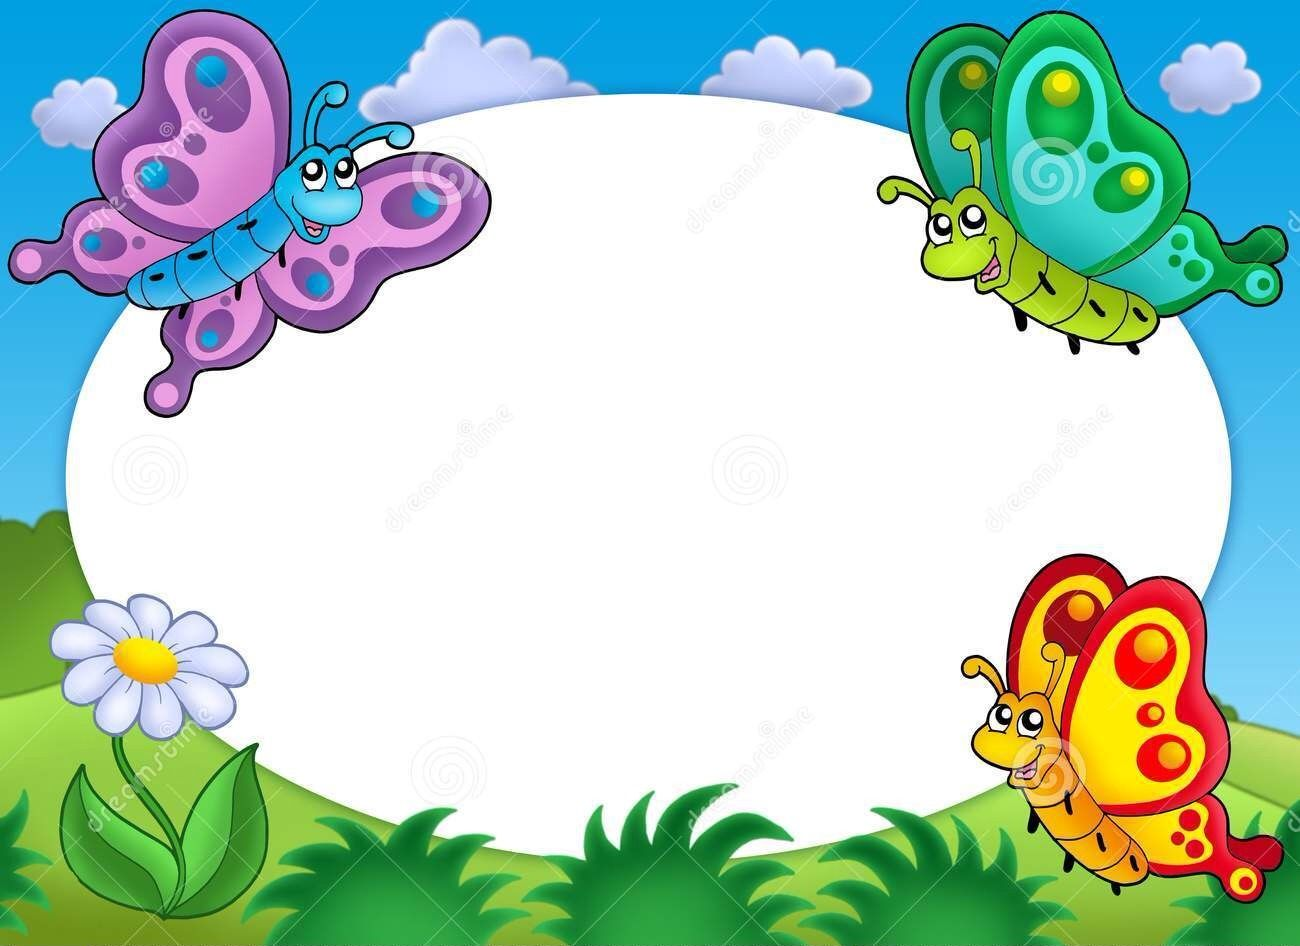 Butterfly clipart picture frame. Dreamstime com butterflies frames